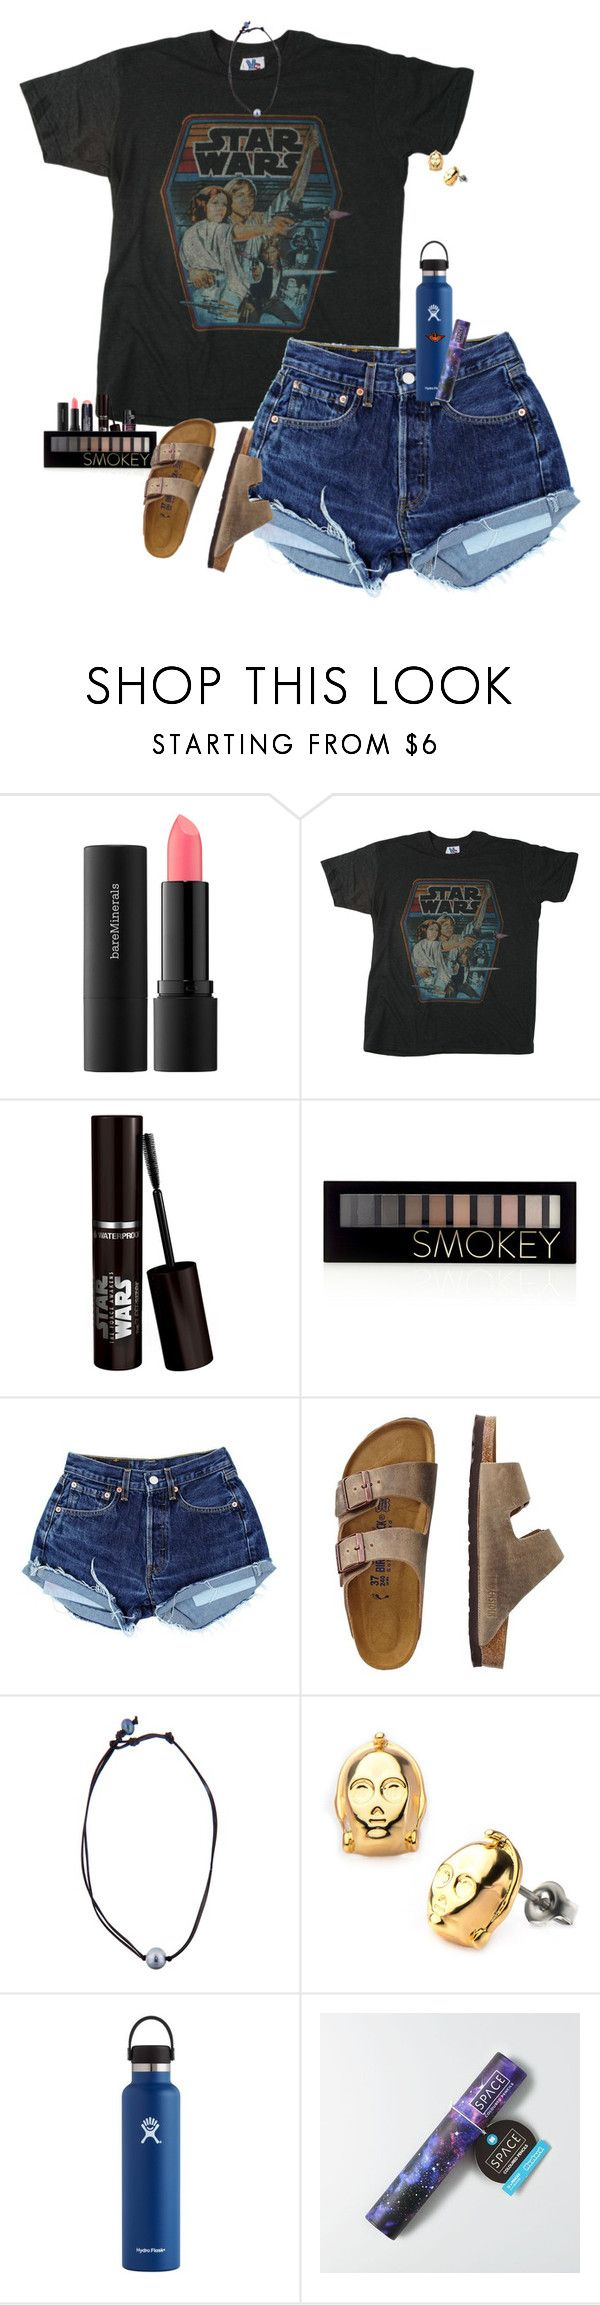 """May the force be with you"" by halledaniella ❤ liked on Polyvore featuring Bare Escentuals, Junk Food Clothing, Smashbox, Forever 21, TravelSmith, Kala, Hydro Flask and American Eagle Outfitters"